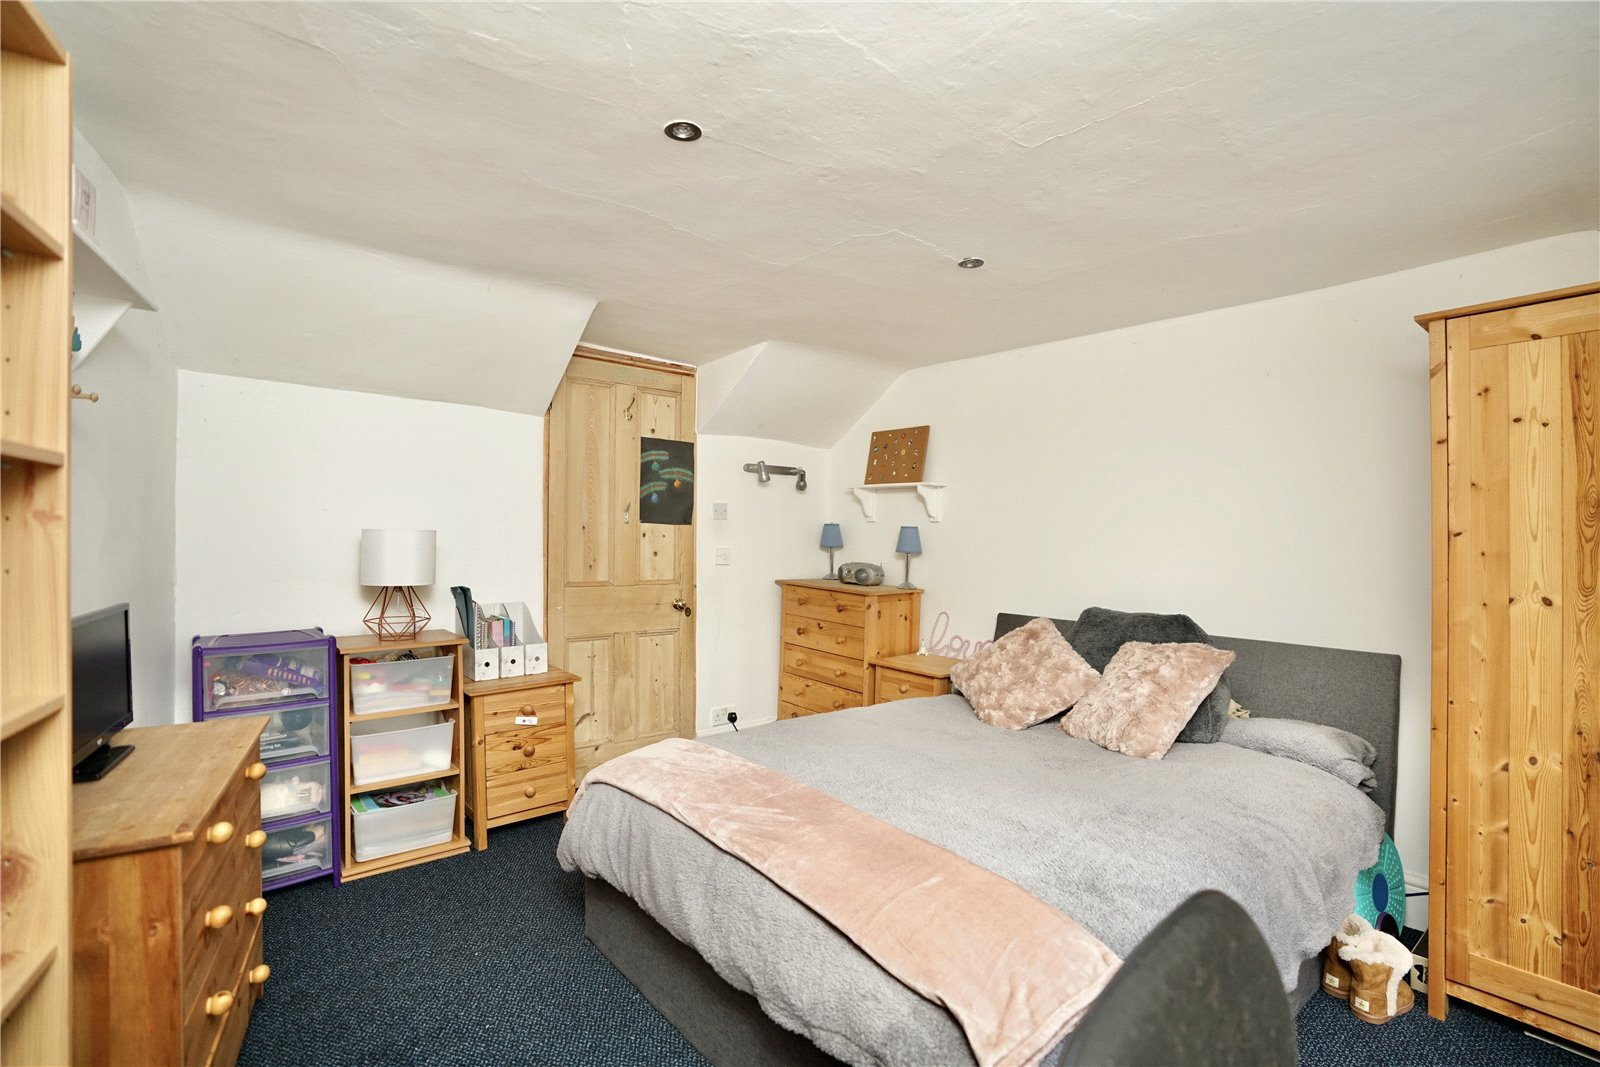 4 bed for sale in The Town, Great Staughton 15